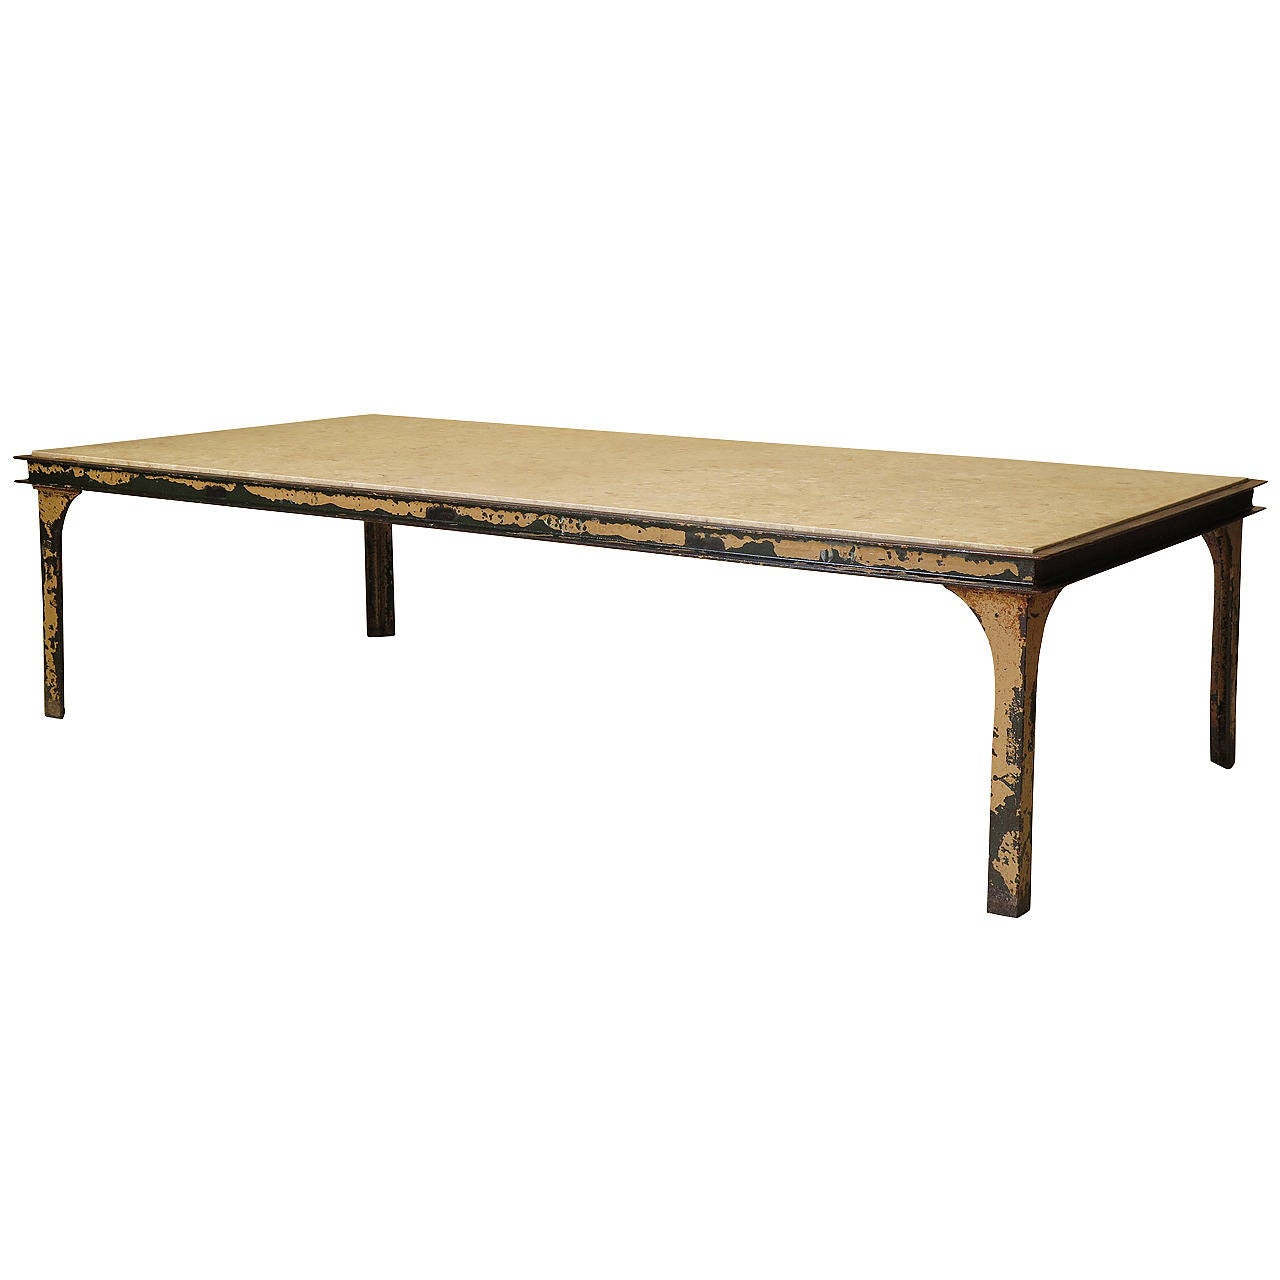 Stone And Iron Coffee Table Large Iron And Stone Coffee Table France 1950s For Sale